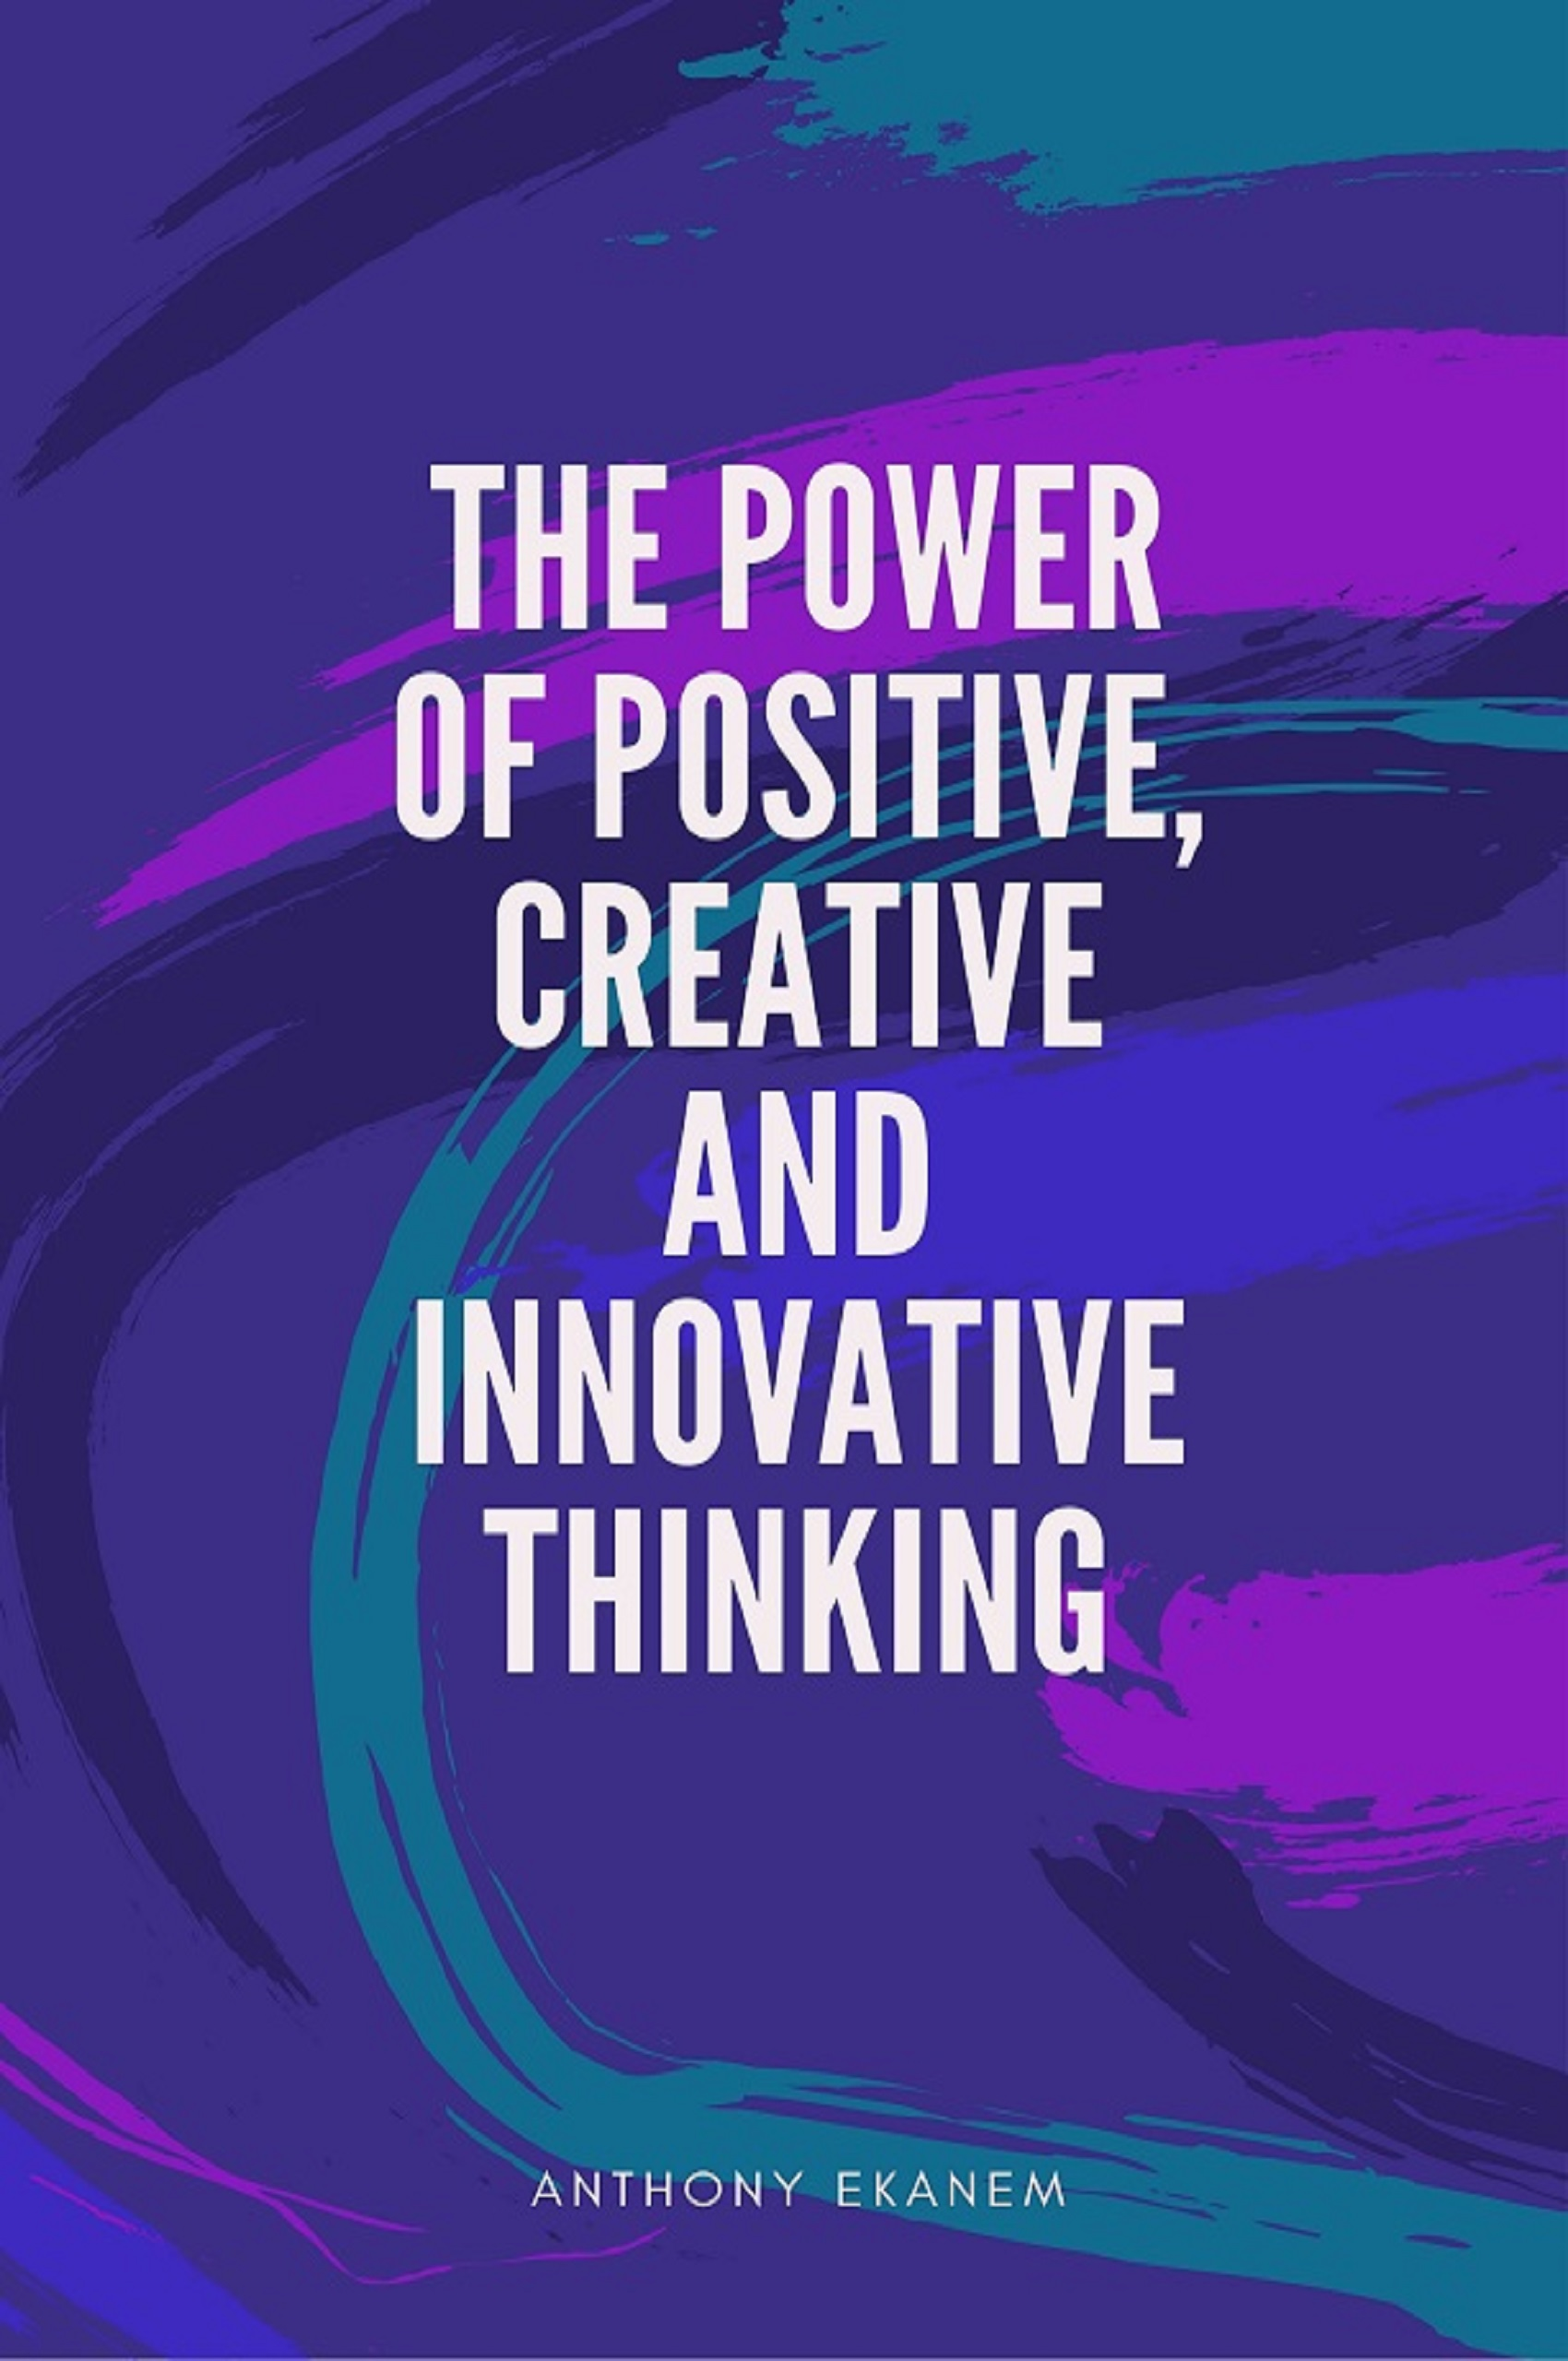 Anthony Ekanem The Power of Positive, Creative and Innovative Thinking david cox creative thinking for dummies